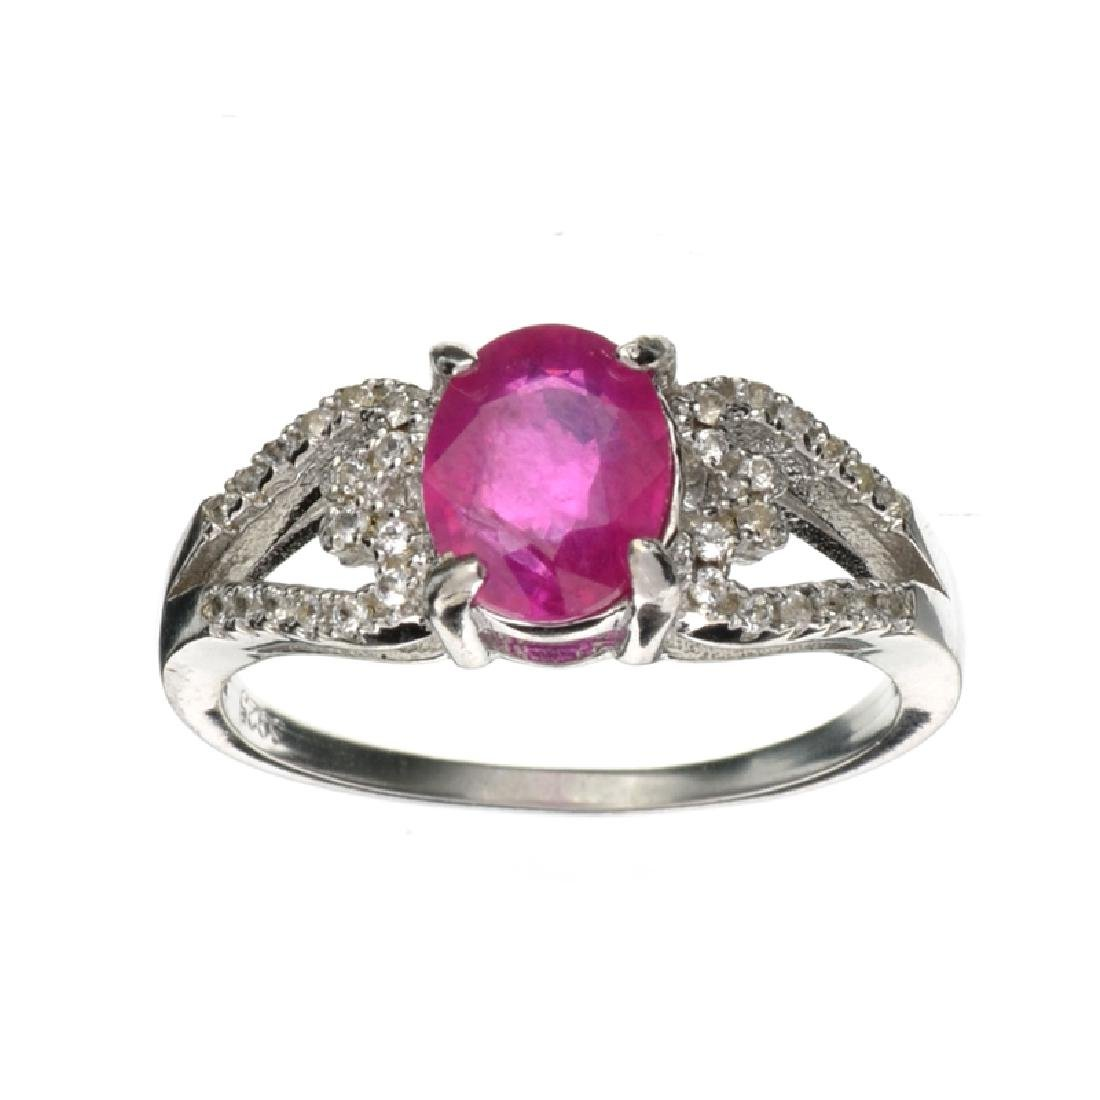 APP: 0.9k Fine Jewelry 1.70CT Ruby And Colorless Topaz